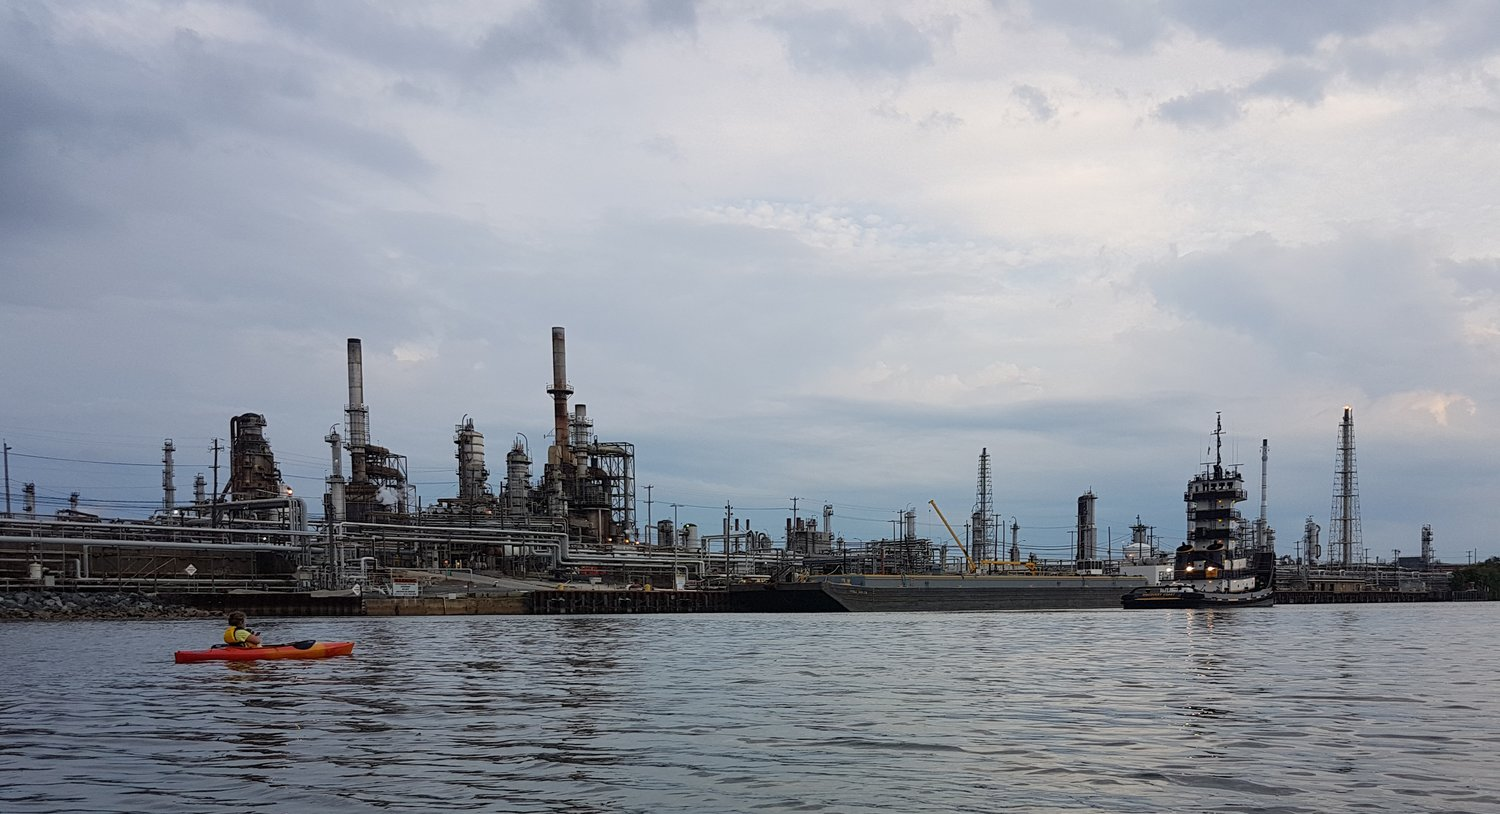 Philadelphia Energy Solutions refinery on the Lower Schuylkill River courtesy of Coryn Wolk